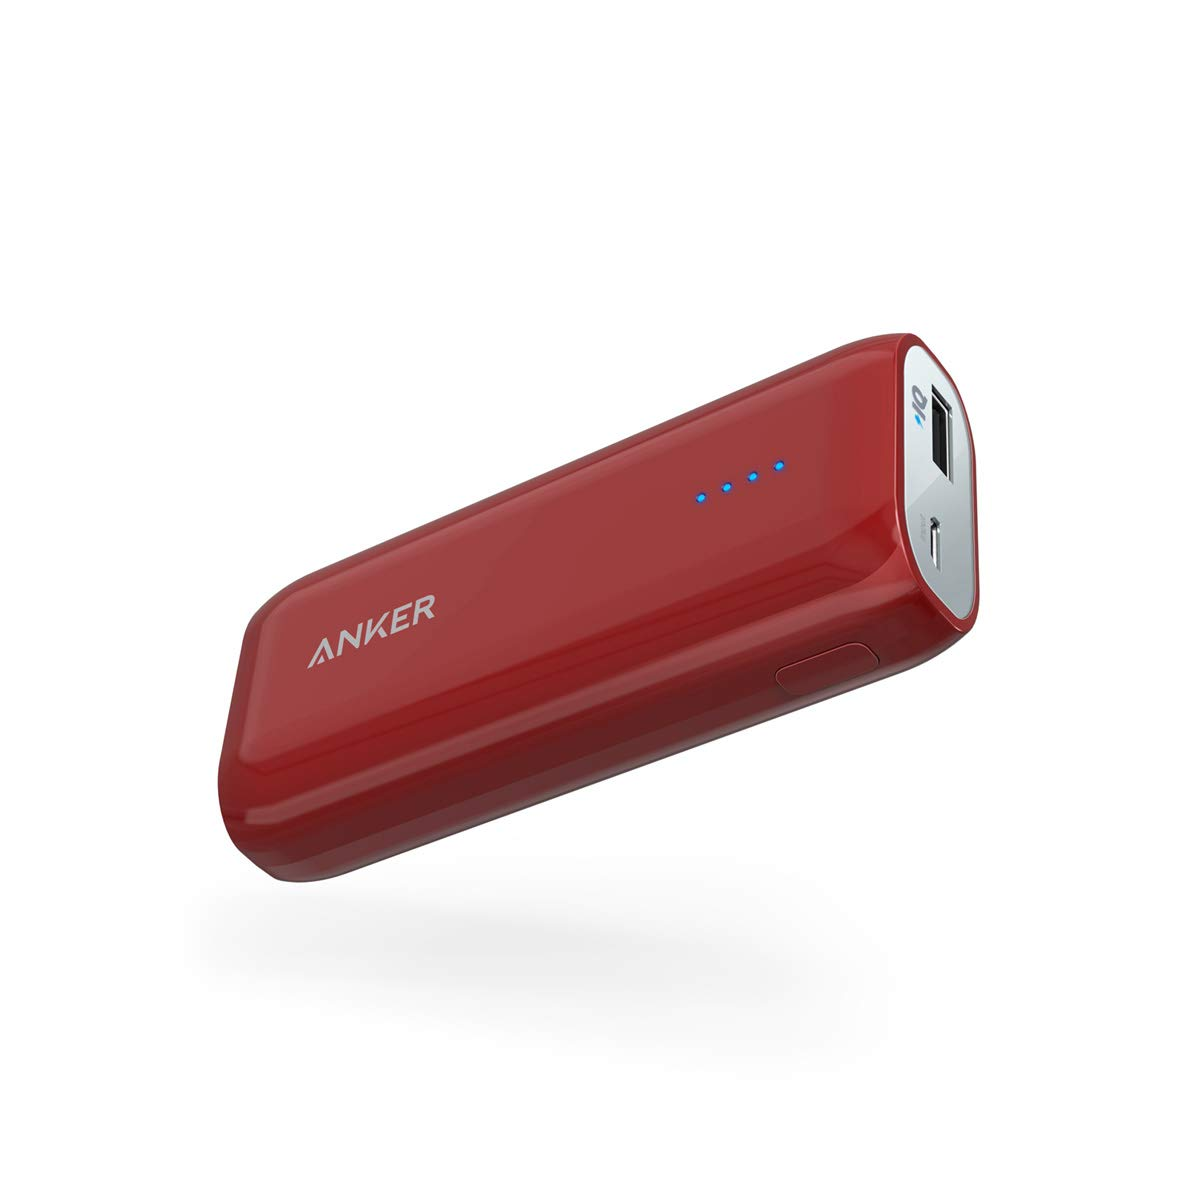 Anker [Upgraded to 6700mAh] Astro E1 Candy-Bar Sized Ultra Compact Portable Charger, External Battery Power Bank, with High-Speed Charging PowerIQ Technology AK-A1211035